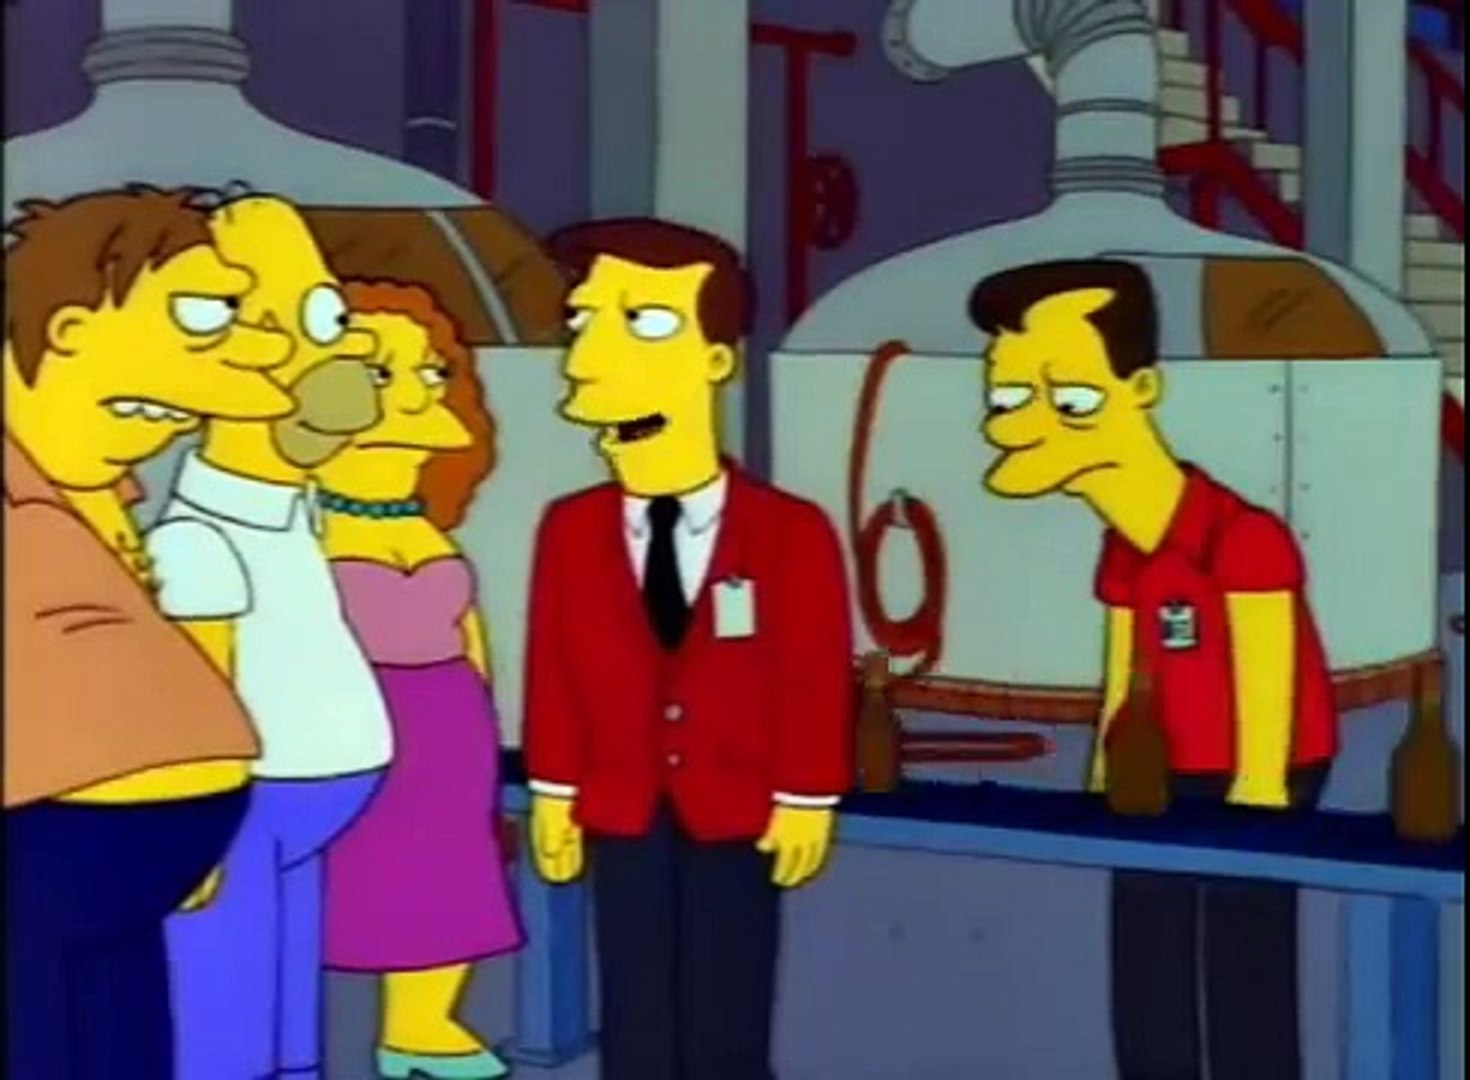 Quality Control (The Simpsons)